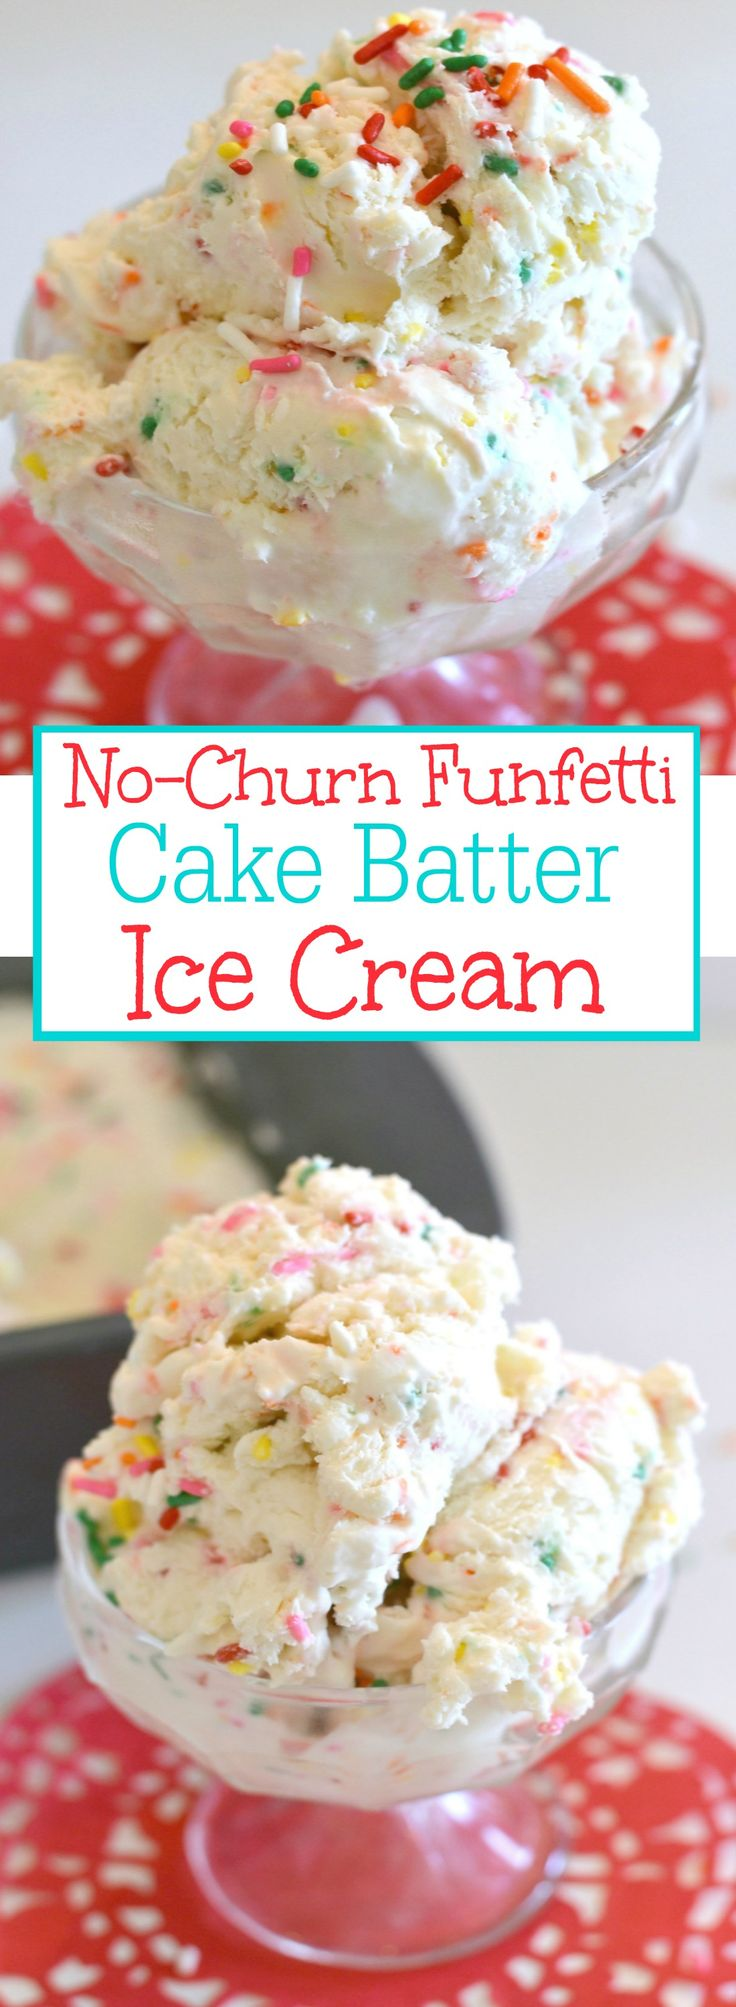 No churn Funfett Birthday Cake Ice cream. Super easy to make!